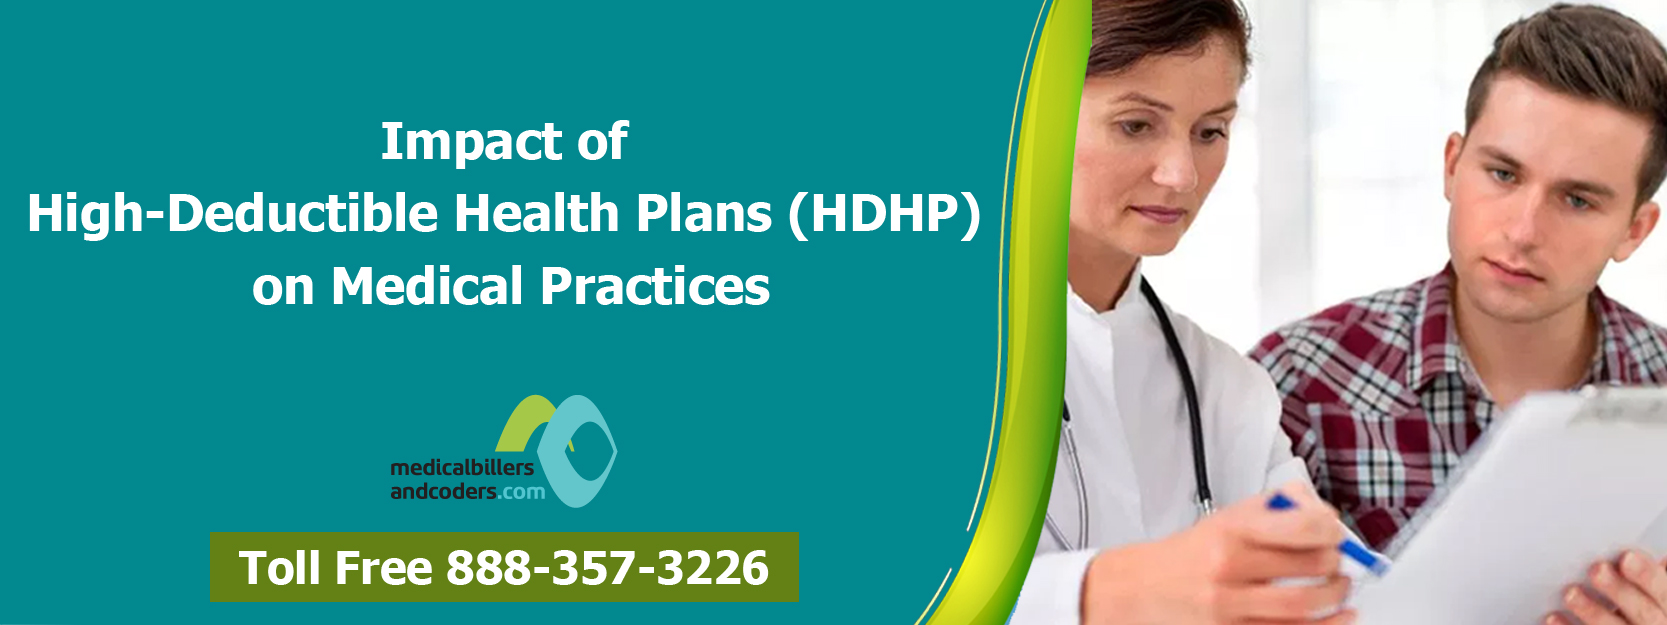 Impact of High-Deductible Health Plans (HDHP) on Medical Practices